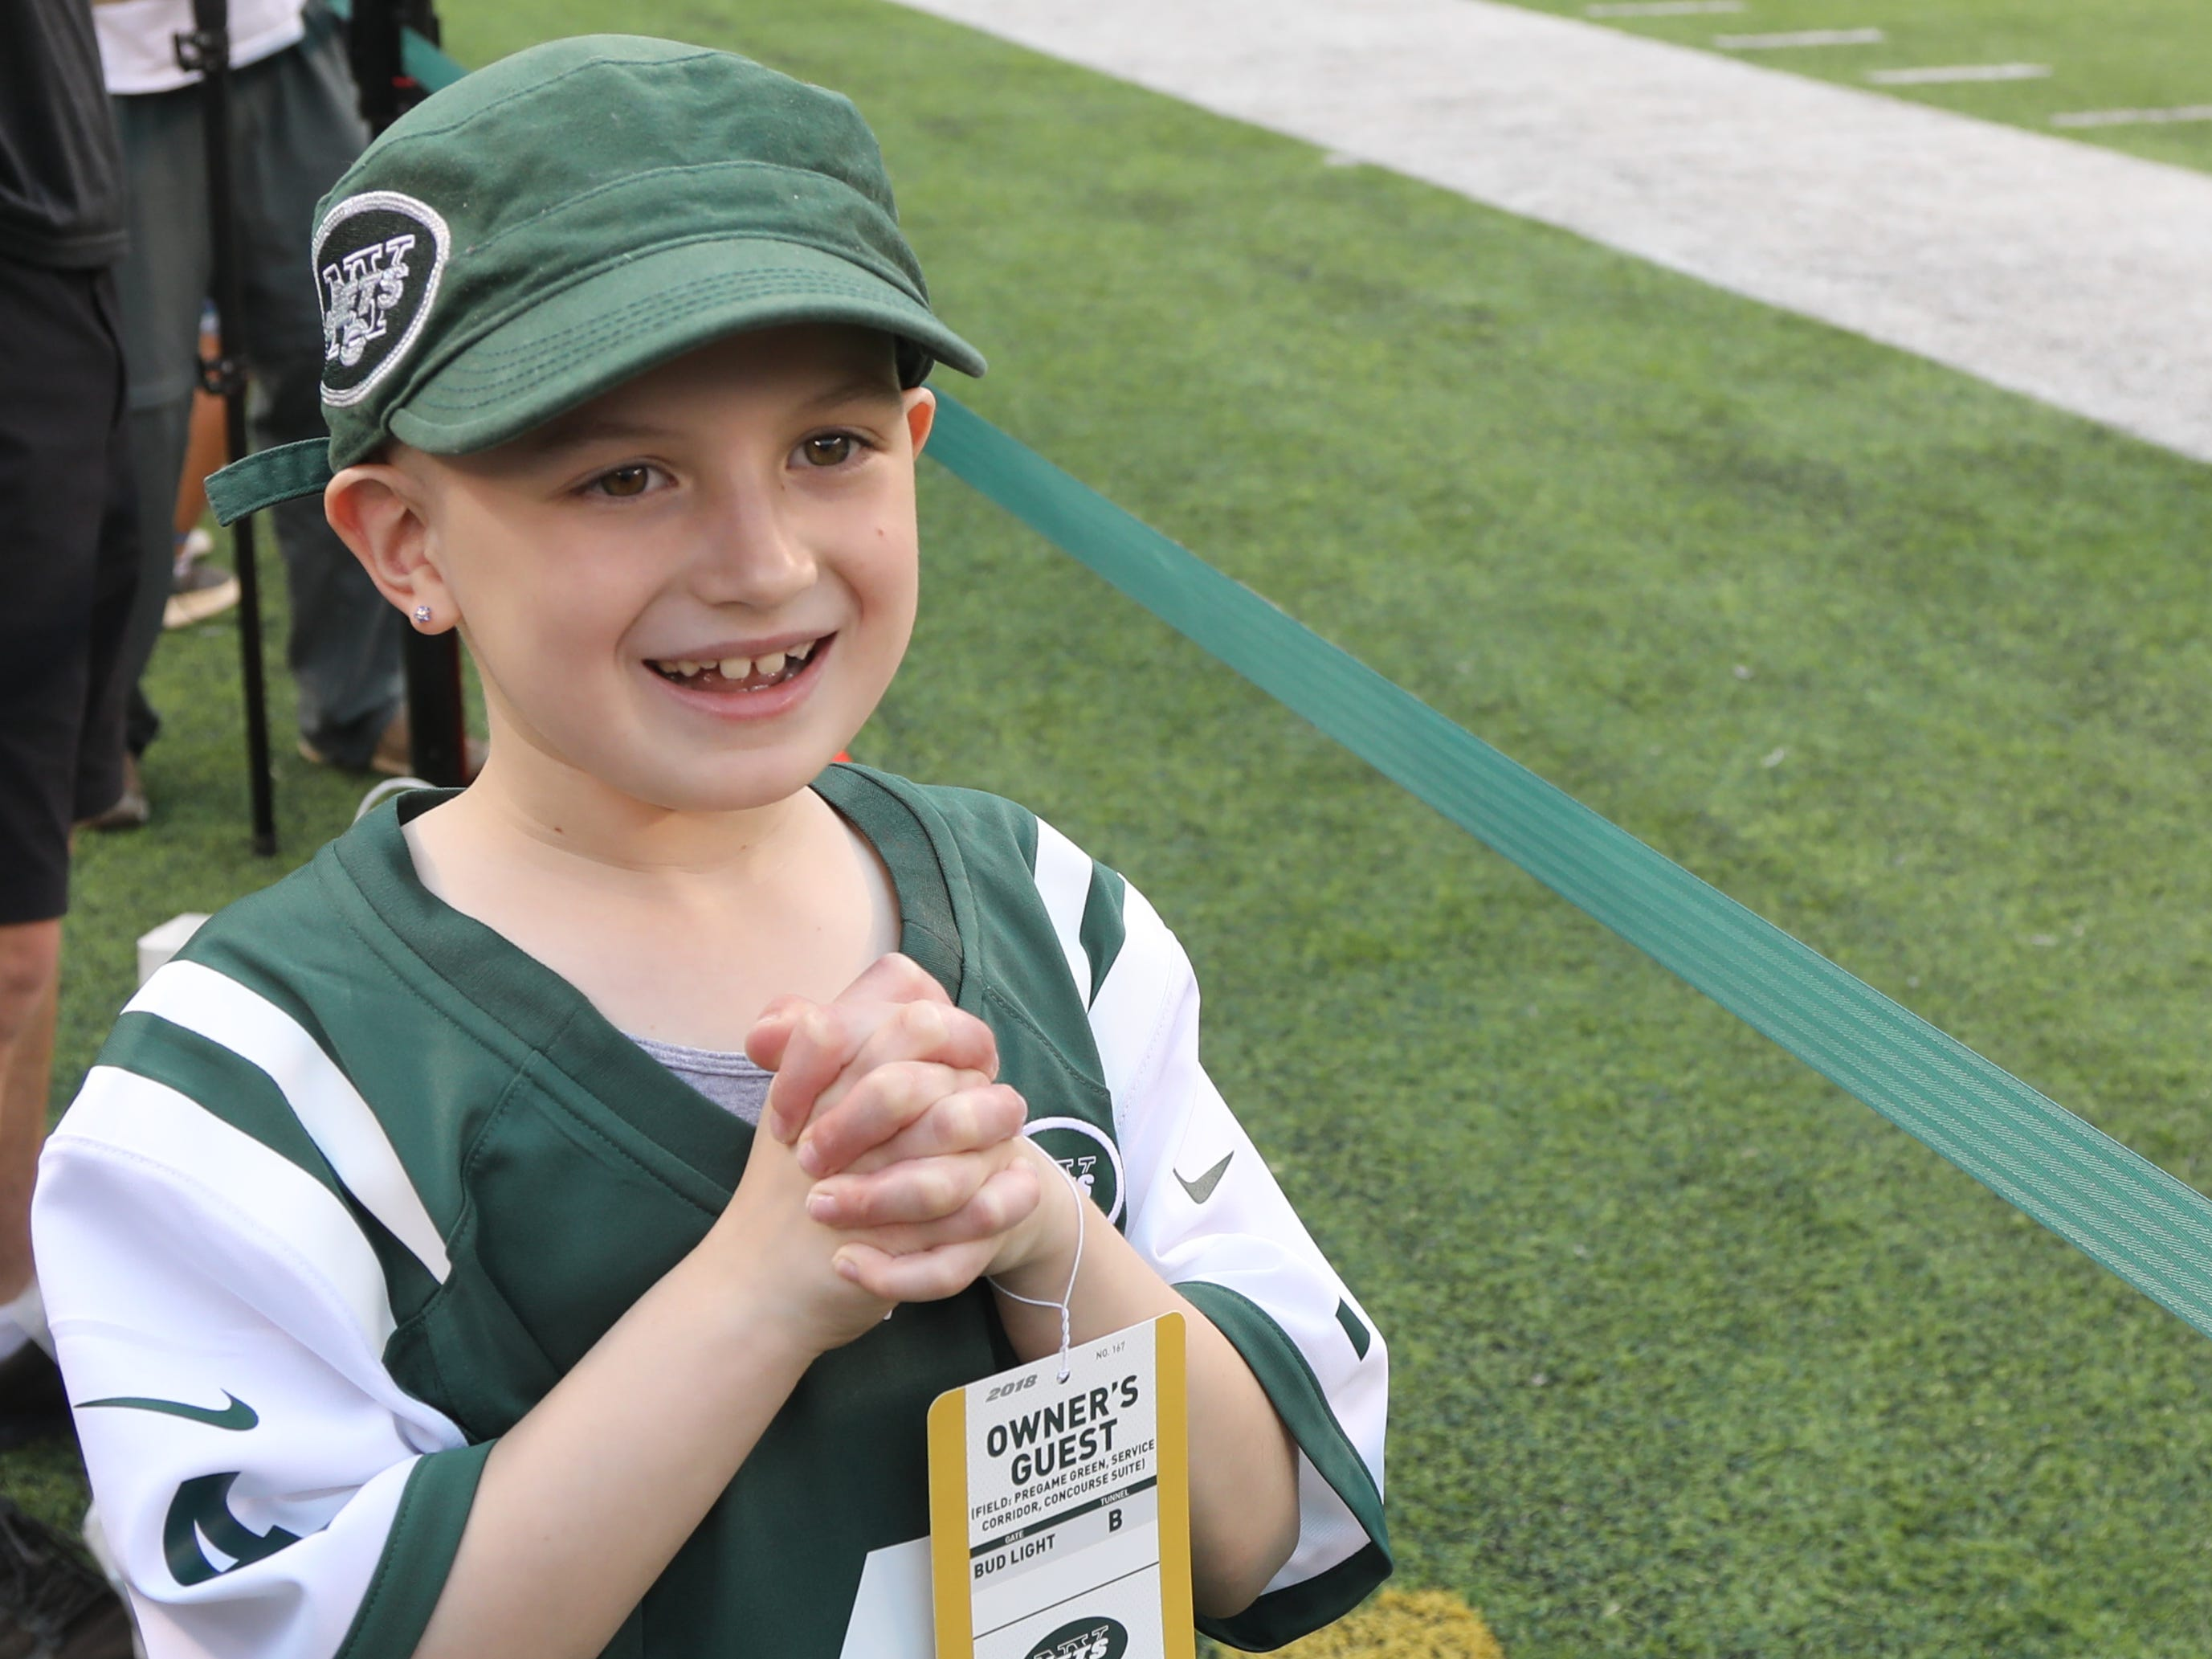 The Jets honorary captain for Friday night's preseason game against the Atlanta Falcons, Grace Eline, 9, of the Gillette section of Long Hill Twp., NJ, watches her team take to the MetLife field for pregame warmups, Aug. 10, 2018.